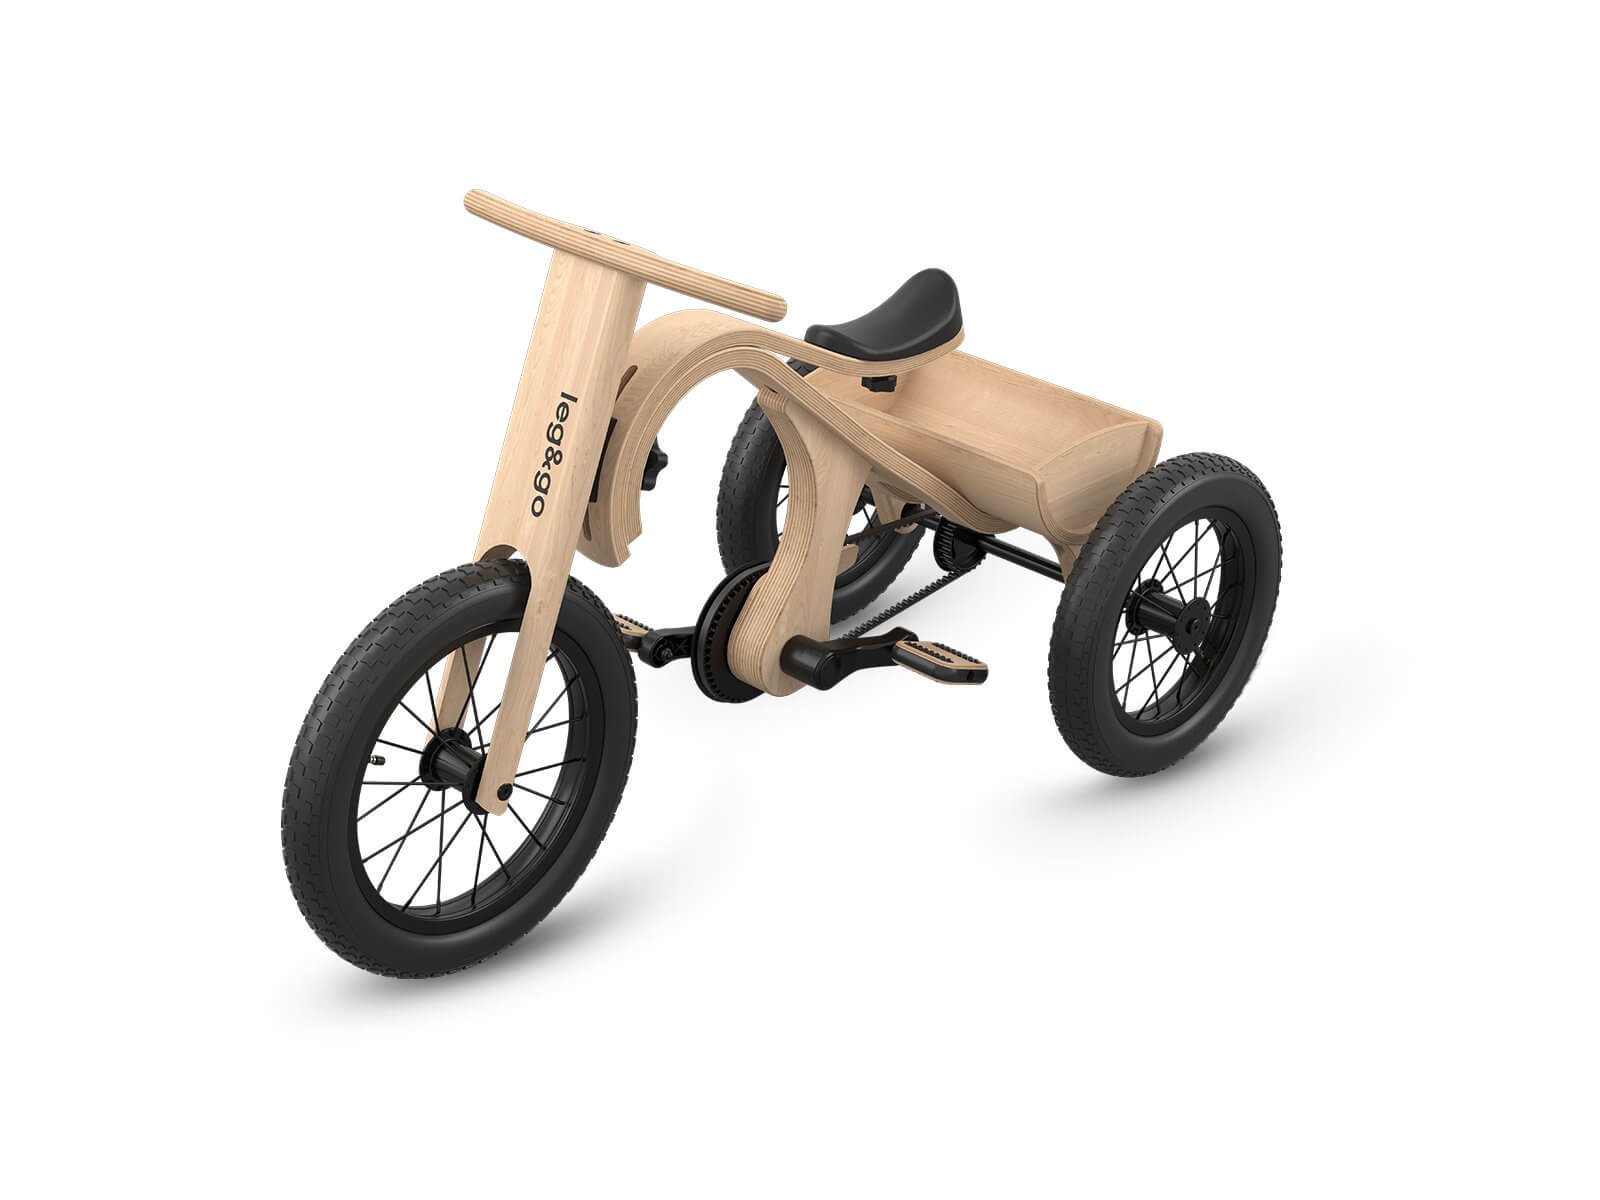 Leg&Go TriCycle - Das Dreirad